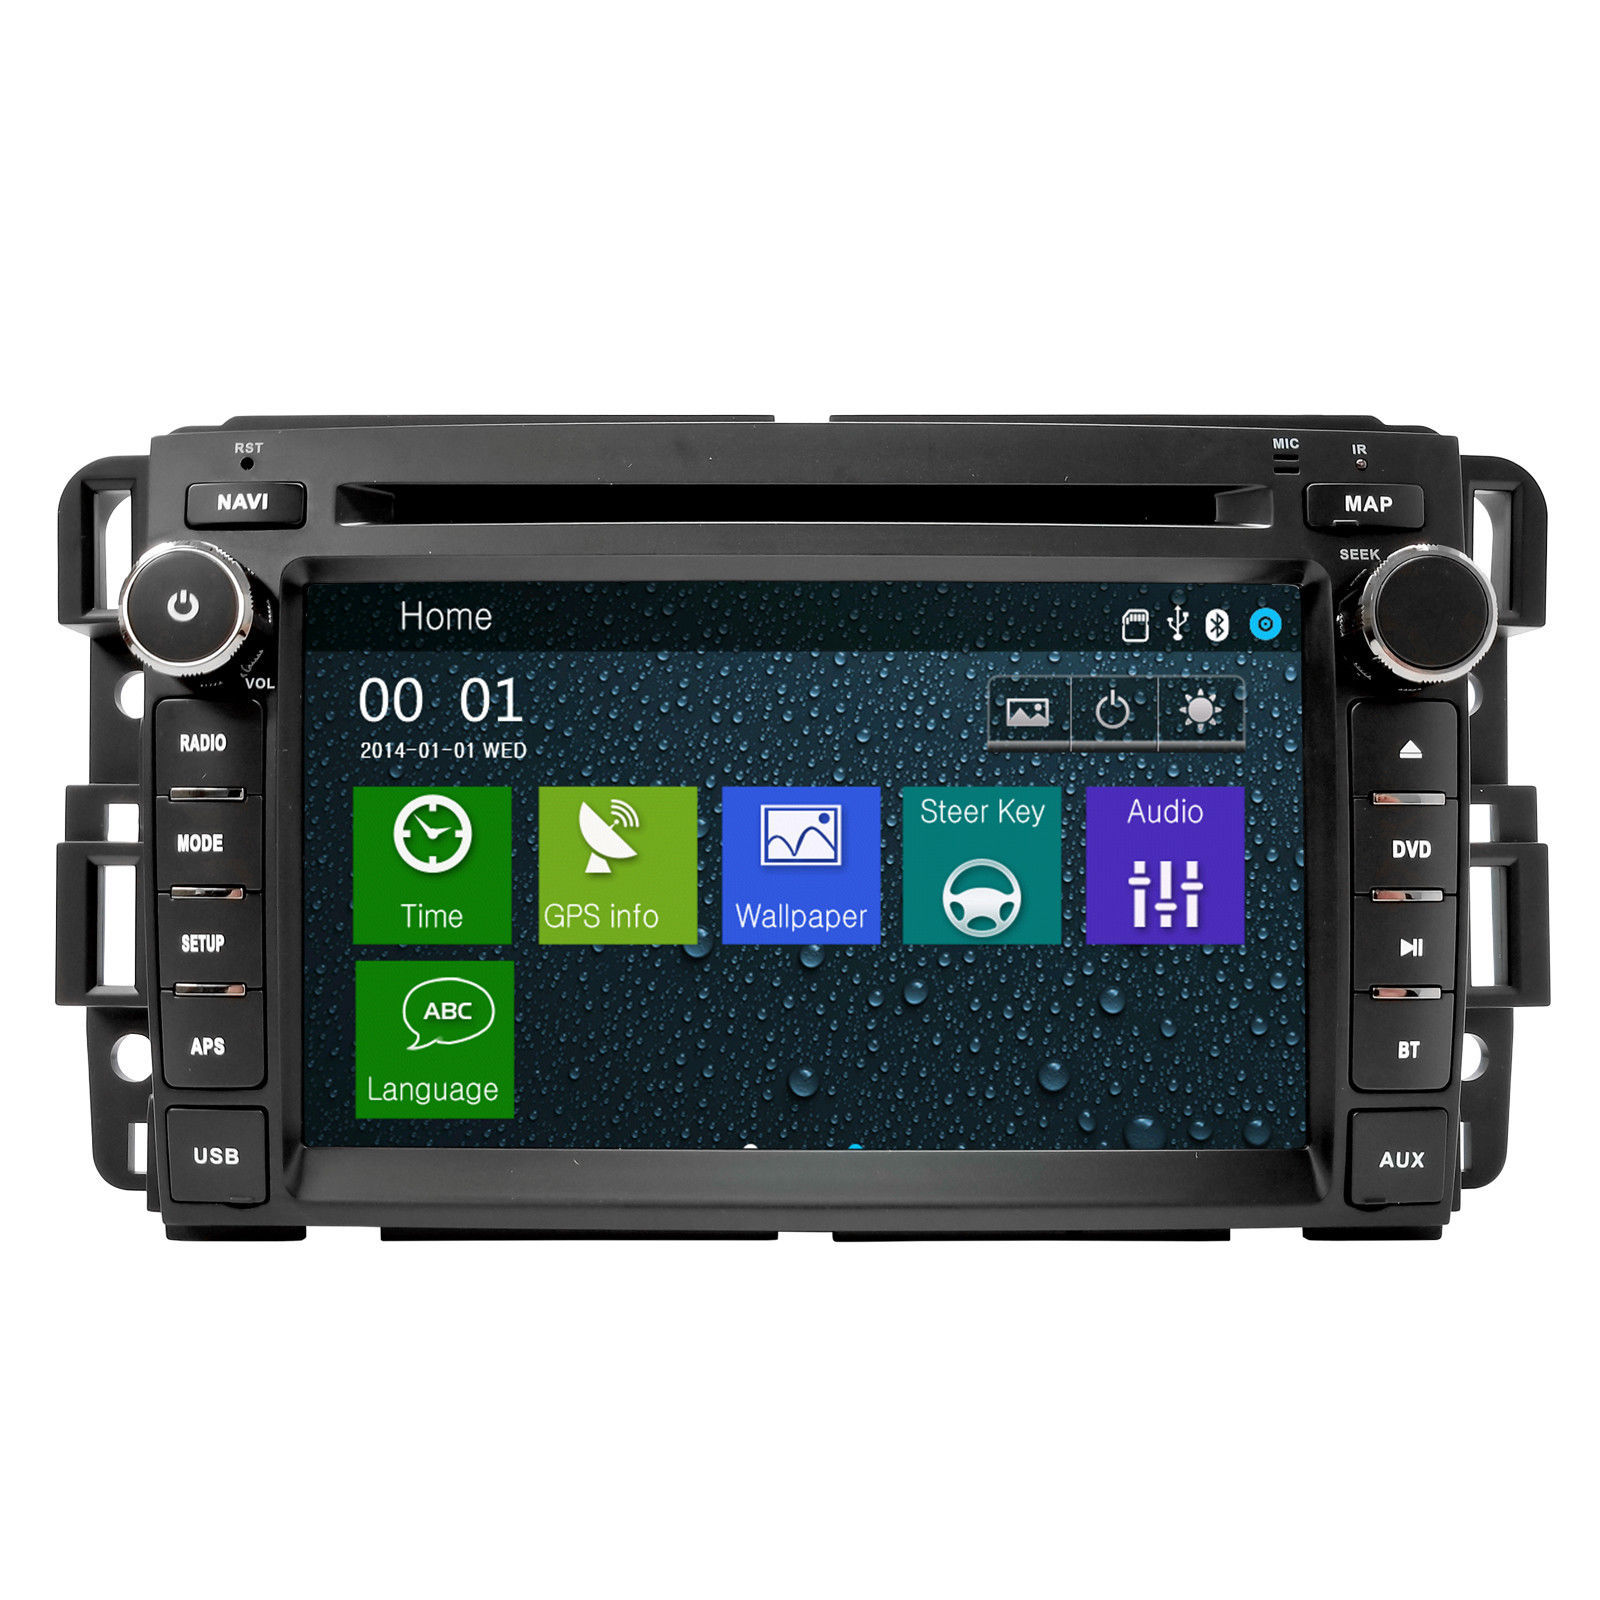 DVD Navigation Touchscreen Multimedia Radio for 2011 GMC Denali image 2